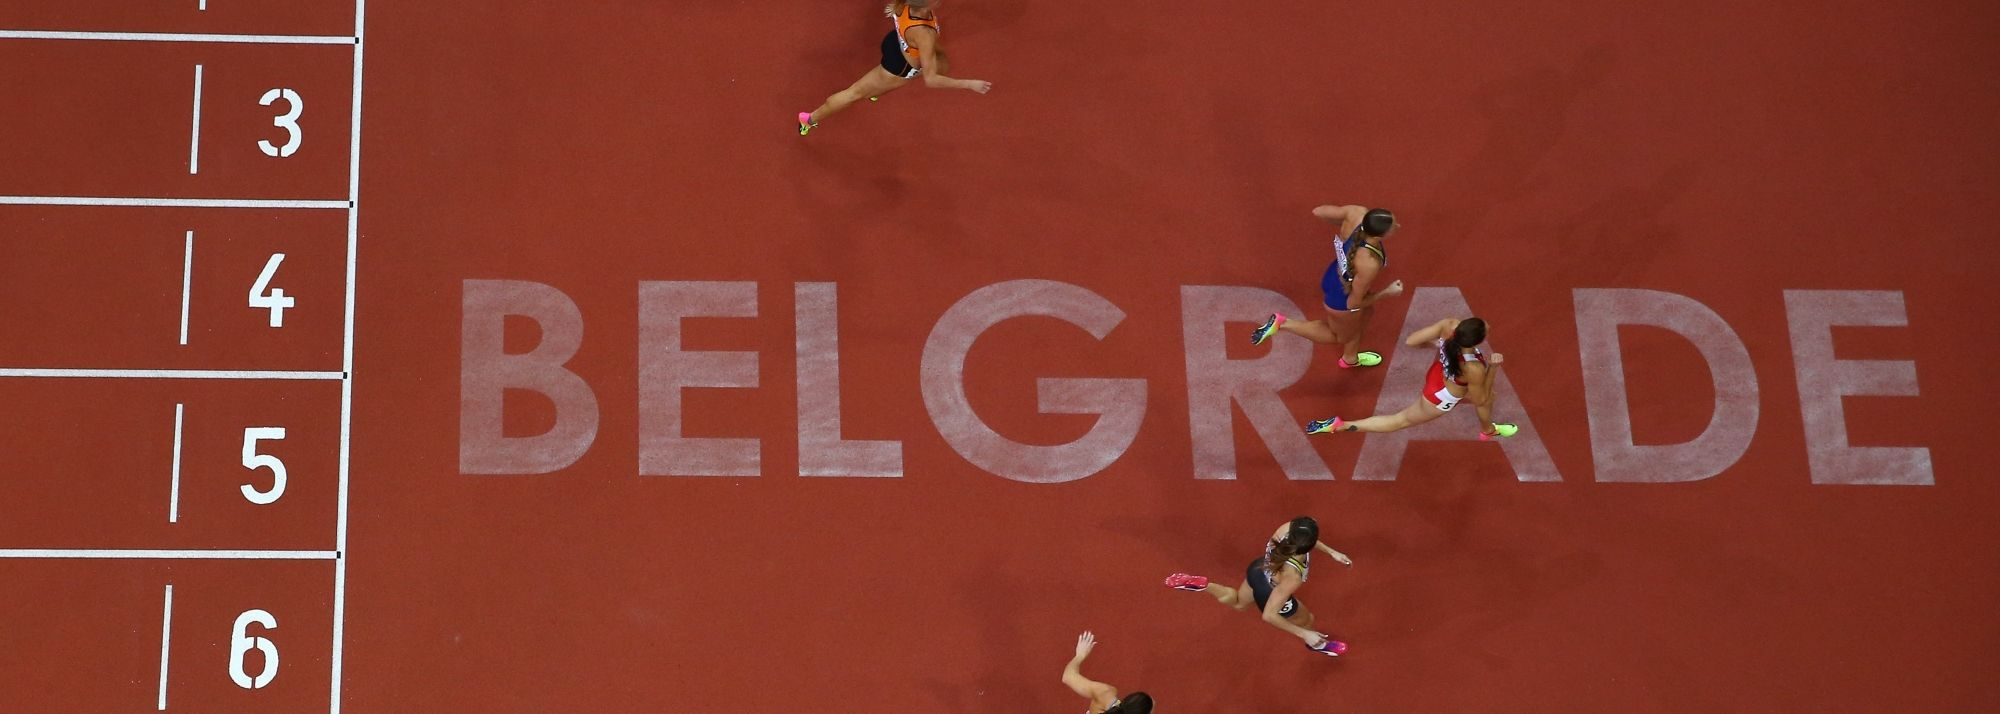 The world's greatest athletes will meet in Belgrade in March 2022.